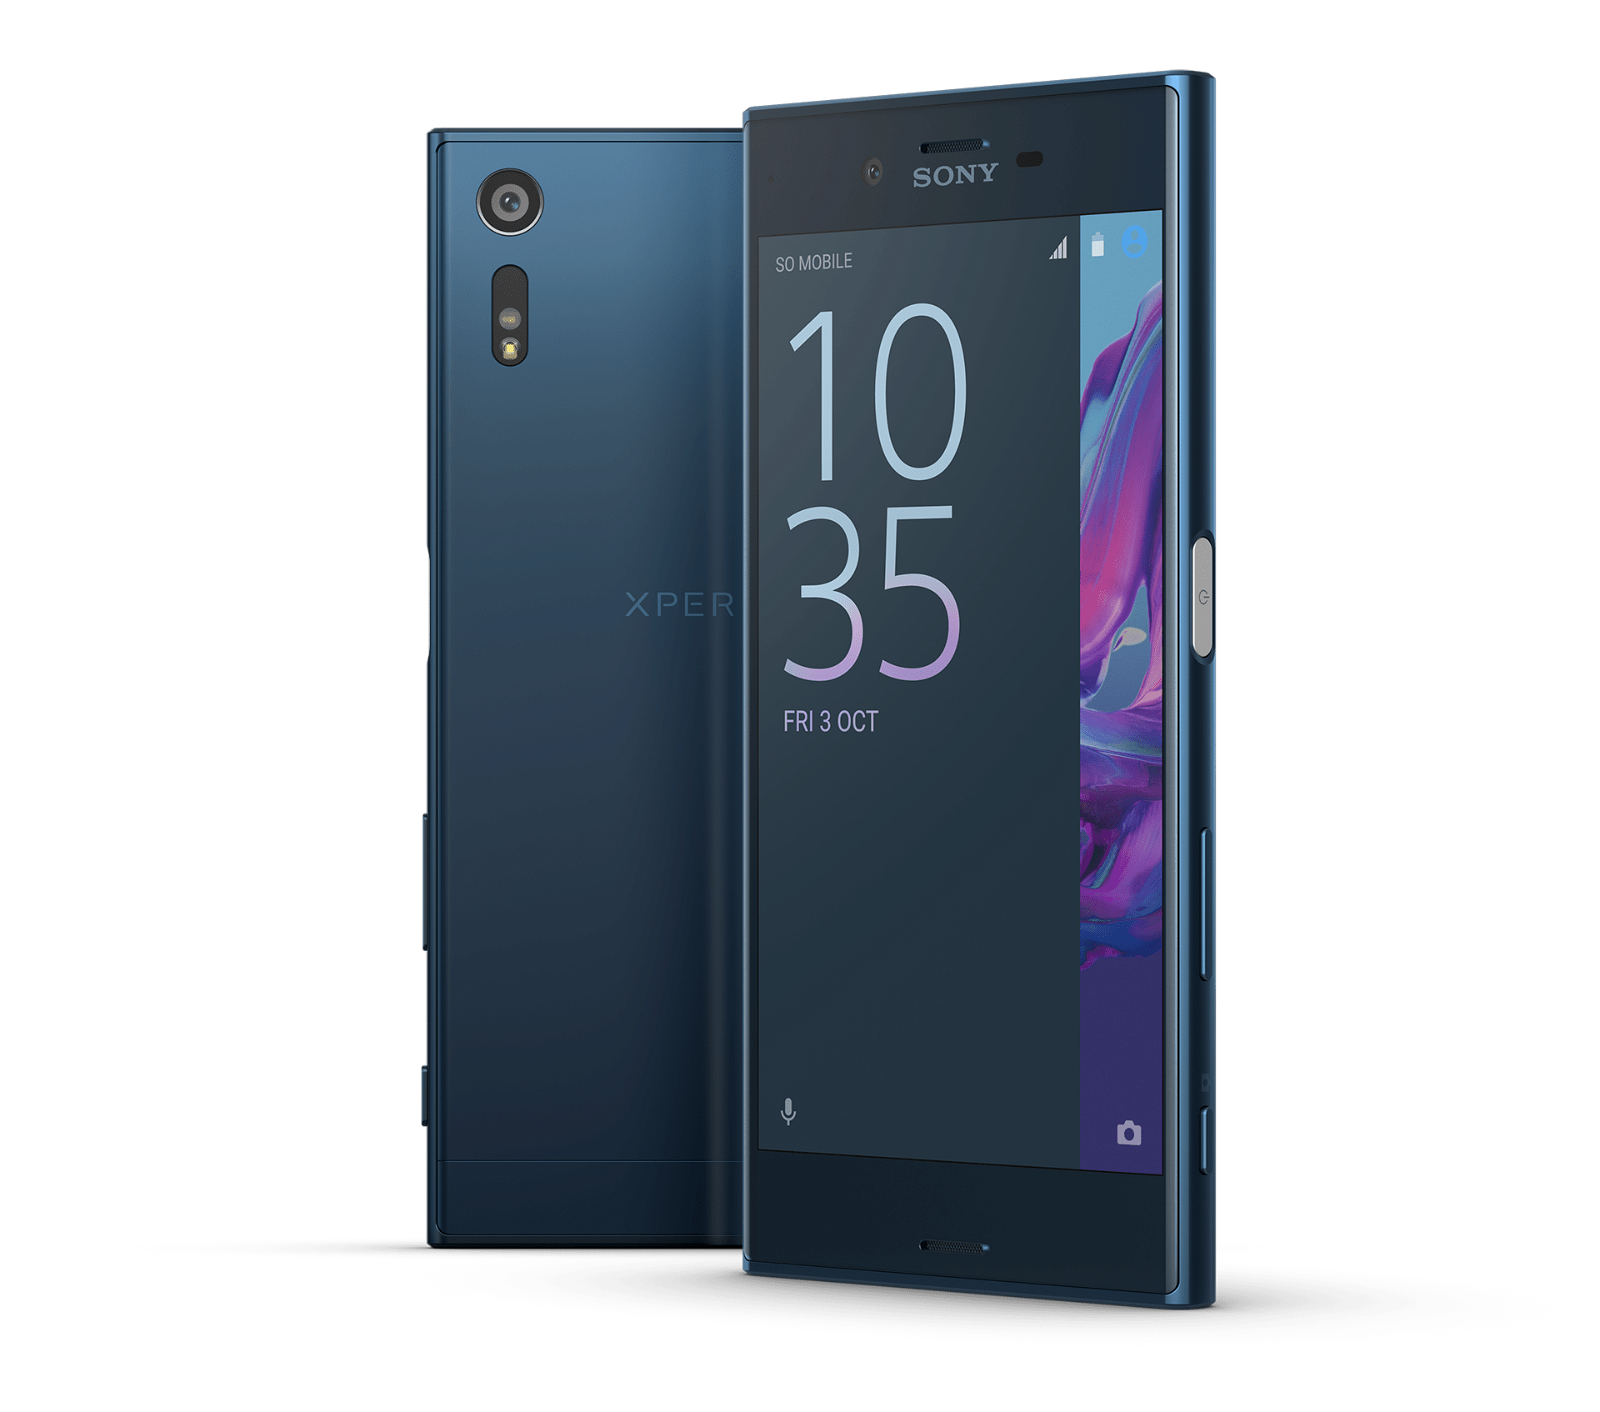 HOW TO: Downgrade Xperia XZ to Android 6.0.1 Marshmallow Official Firmware 2